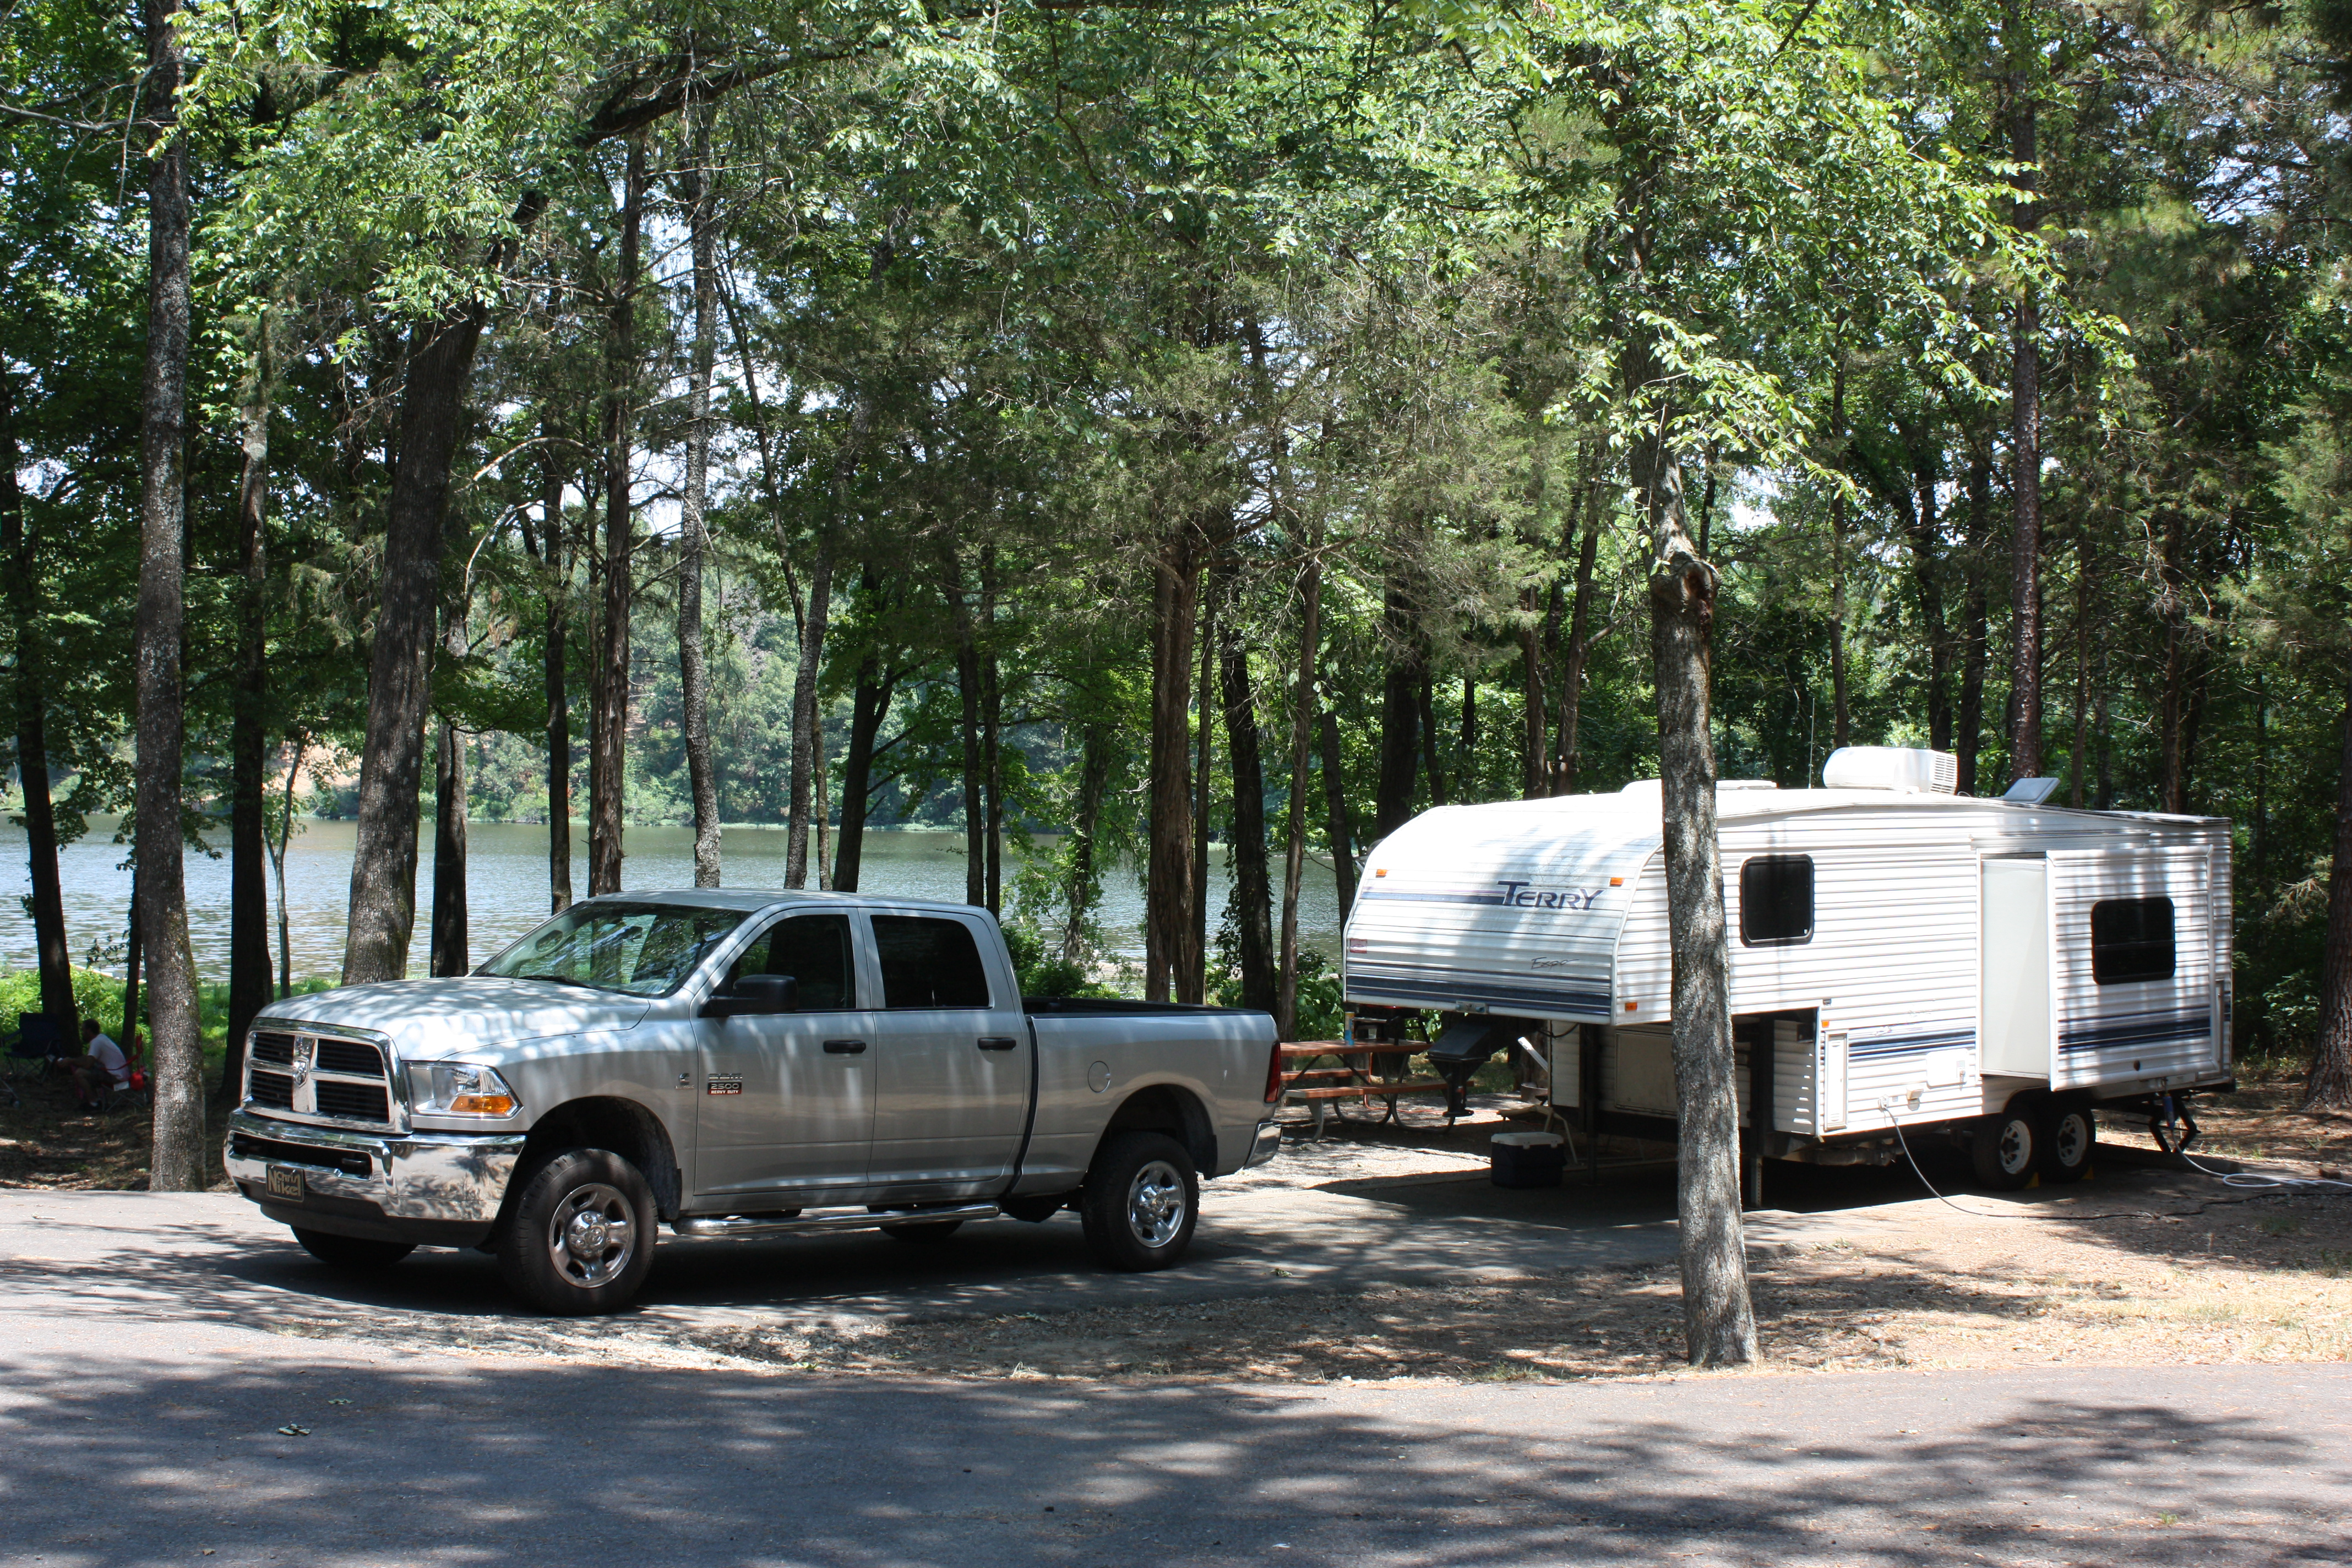 Piney Bay Park campsite